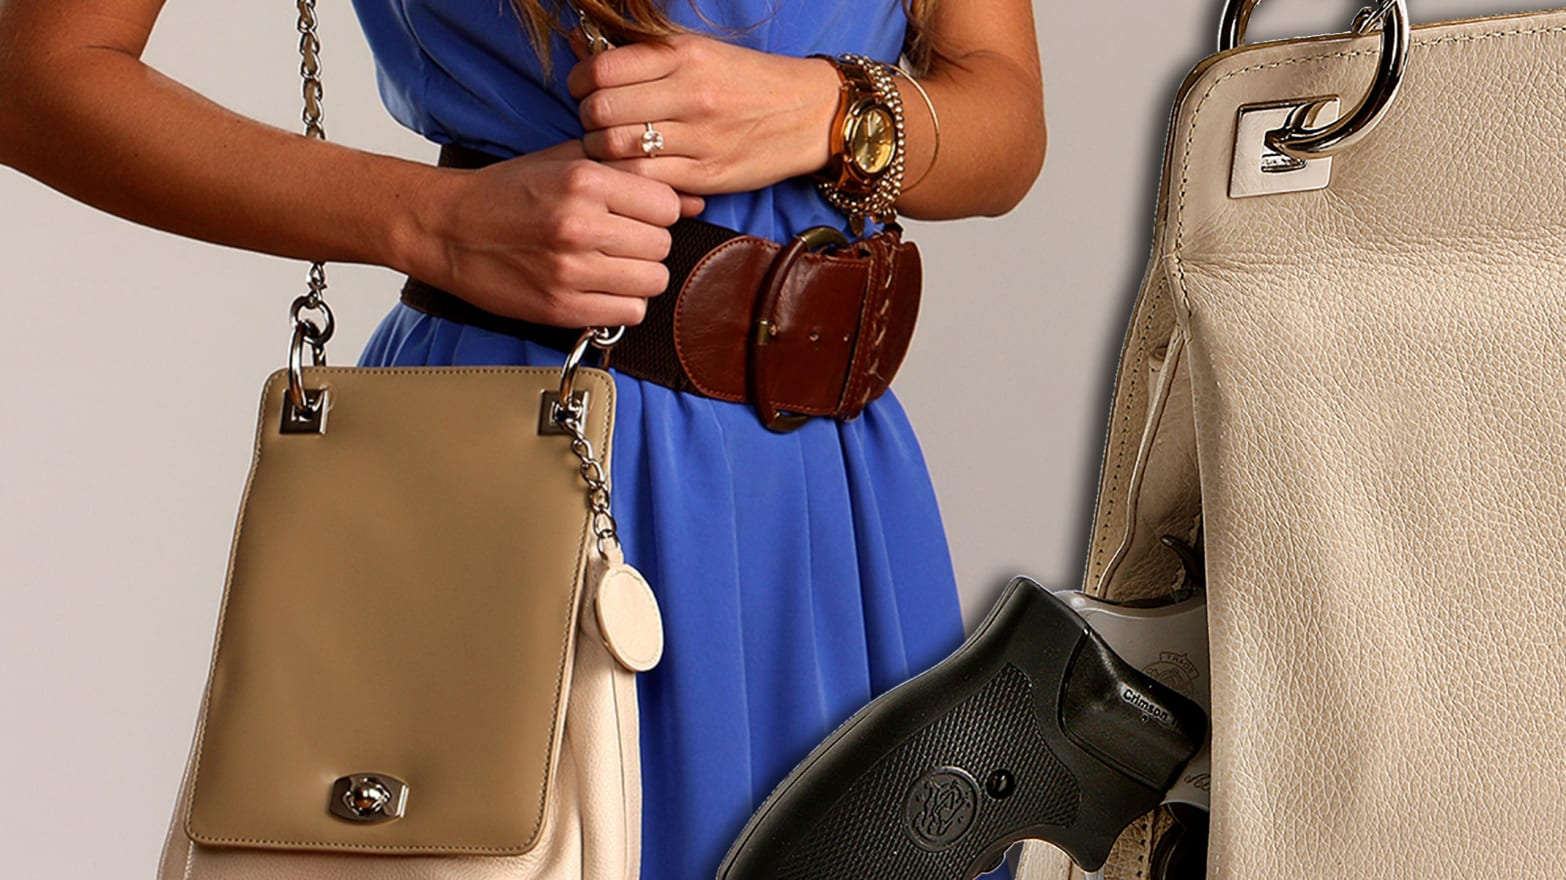 Concealed Carry Handbags  An Evening Bag for Your Gun  11e925153a424